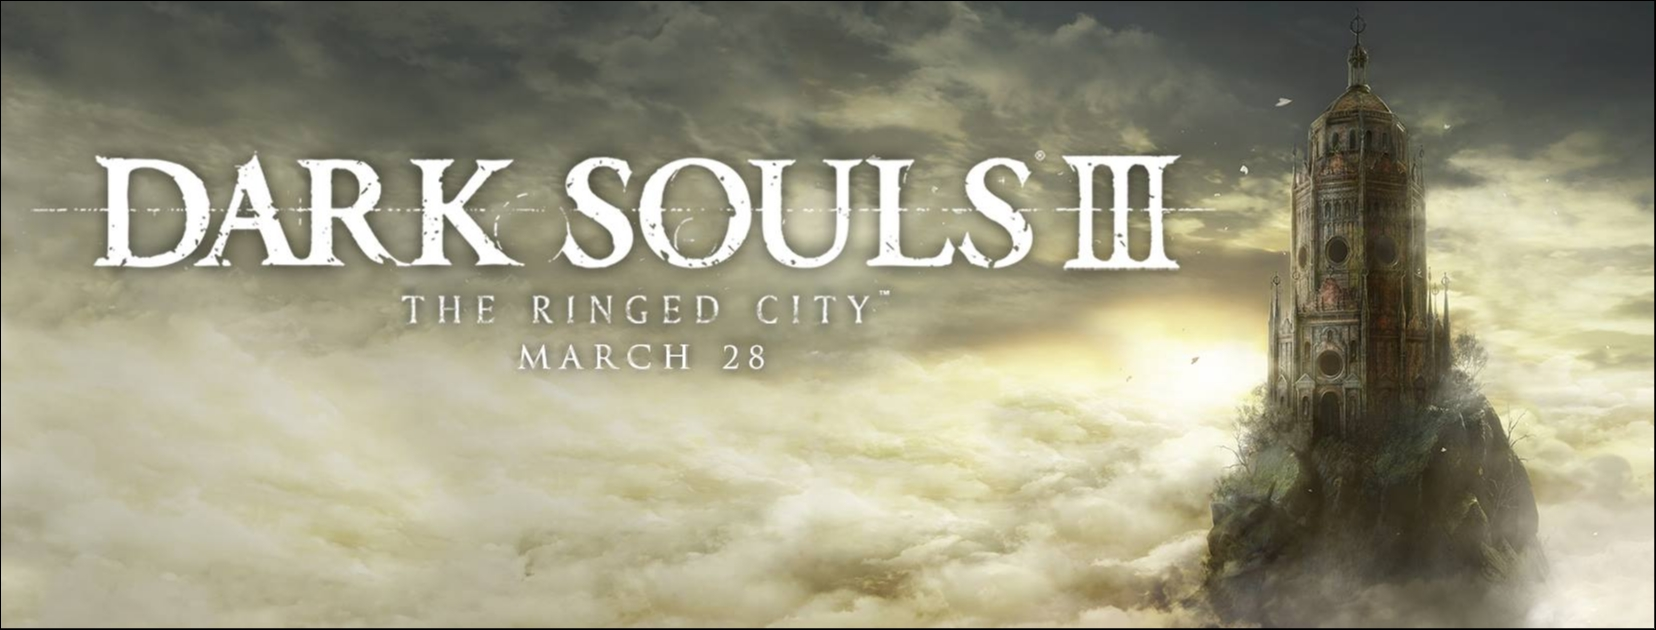 dark-souls-3-the-ringed-city-14-1485183234.jpg